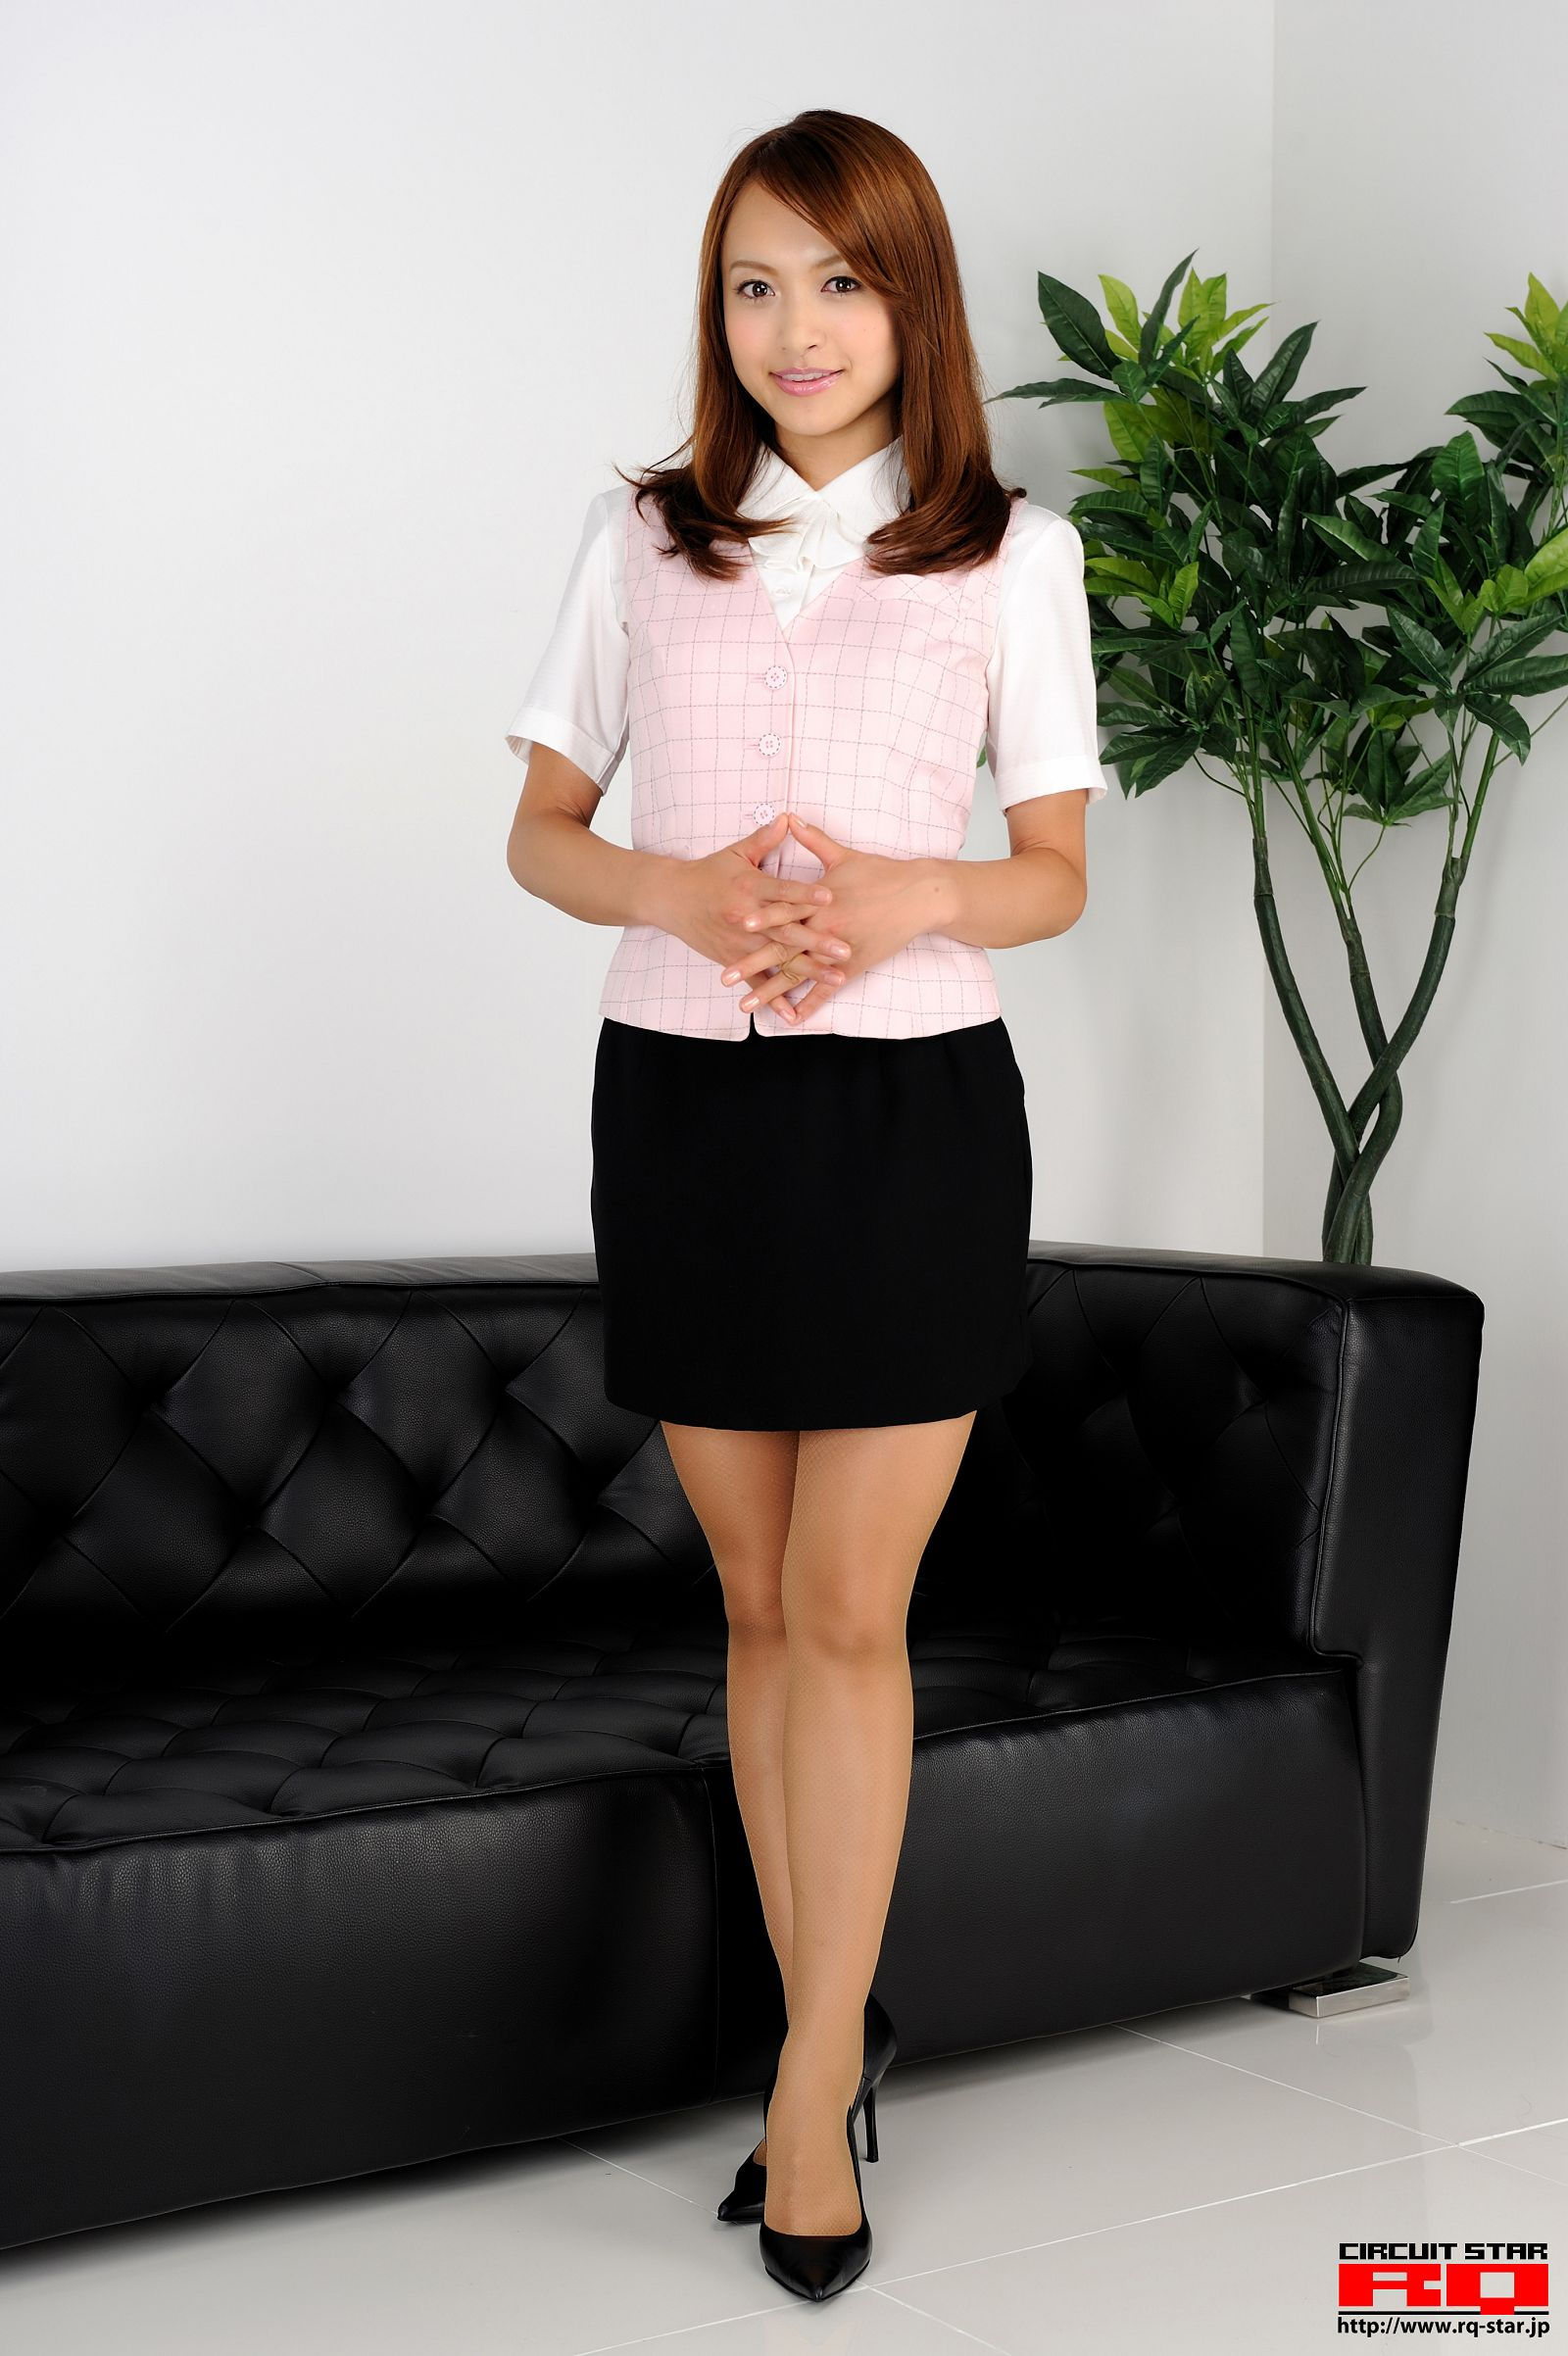 [RQ STAR美女] NO.0372 Rina Itoh 伊東りな Office Lady[95P] RQ STAR 第1张